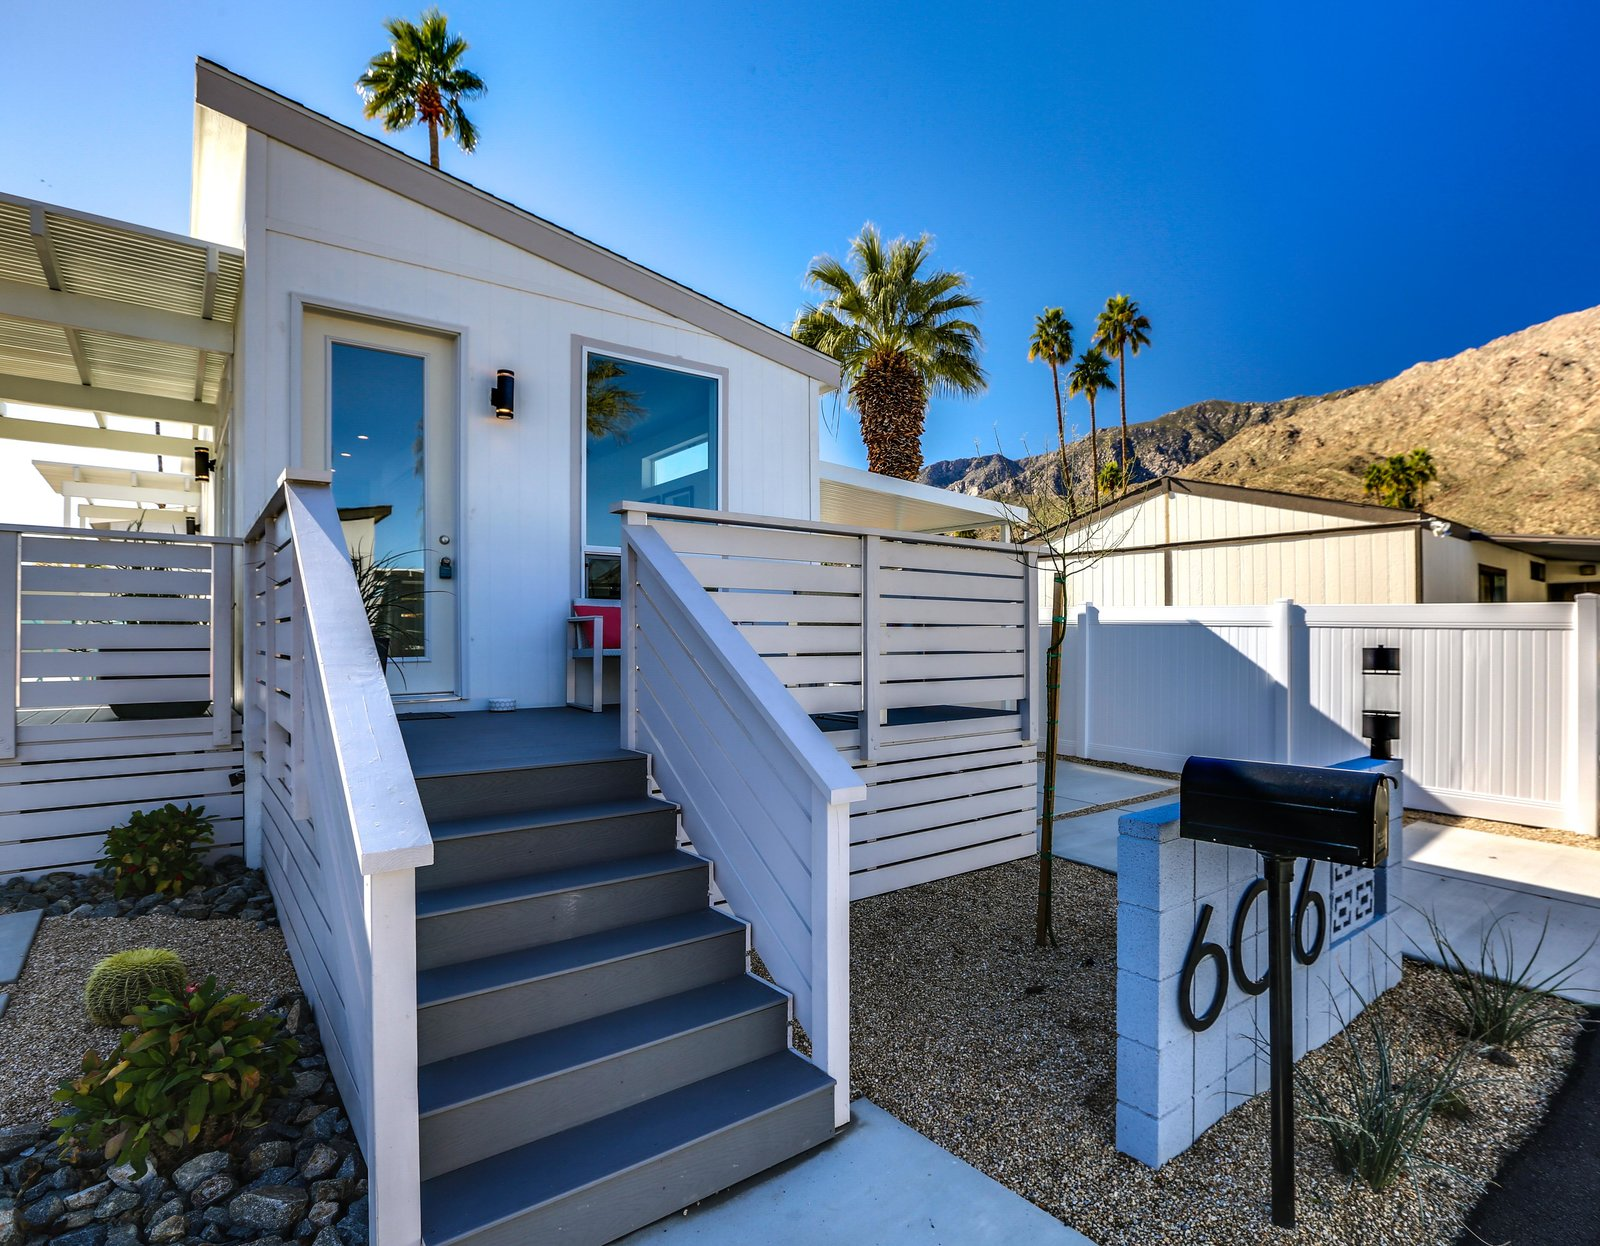 Palm Canyon Mobile Club prefab tiny home